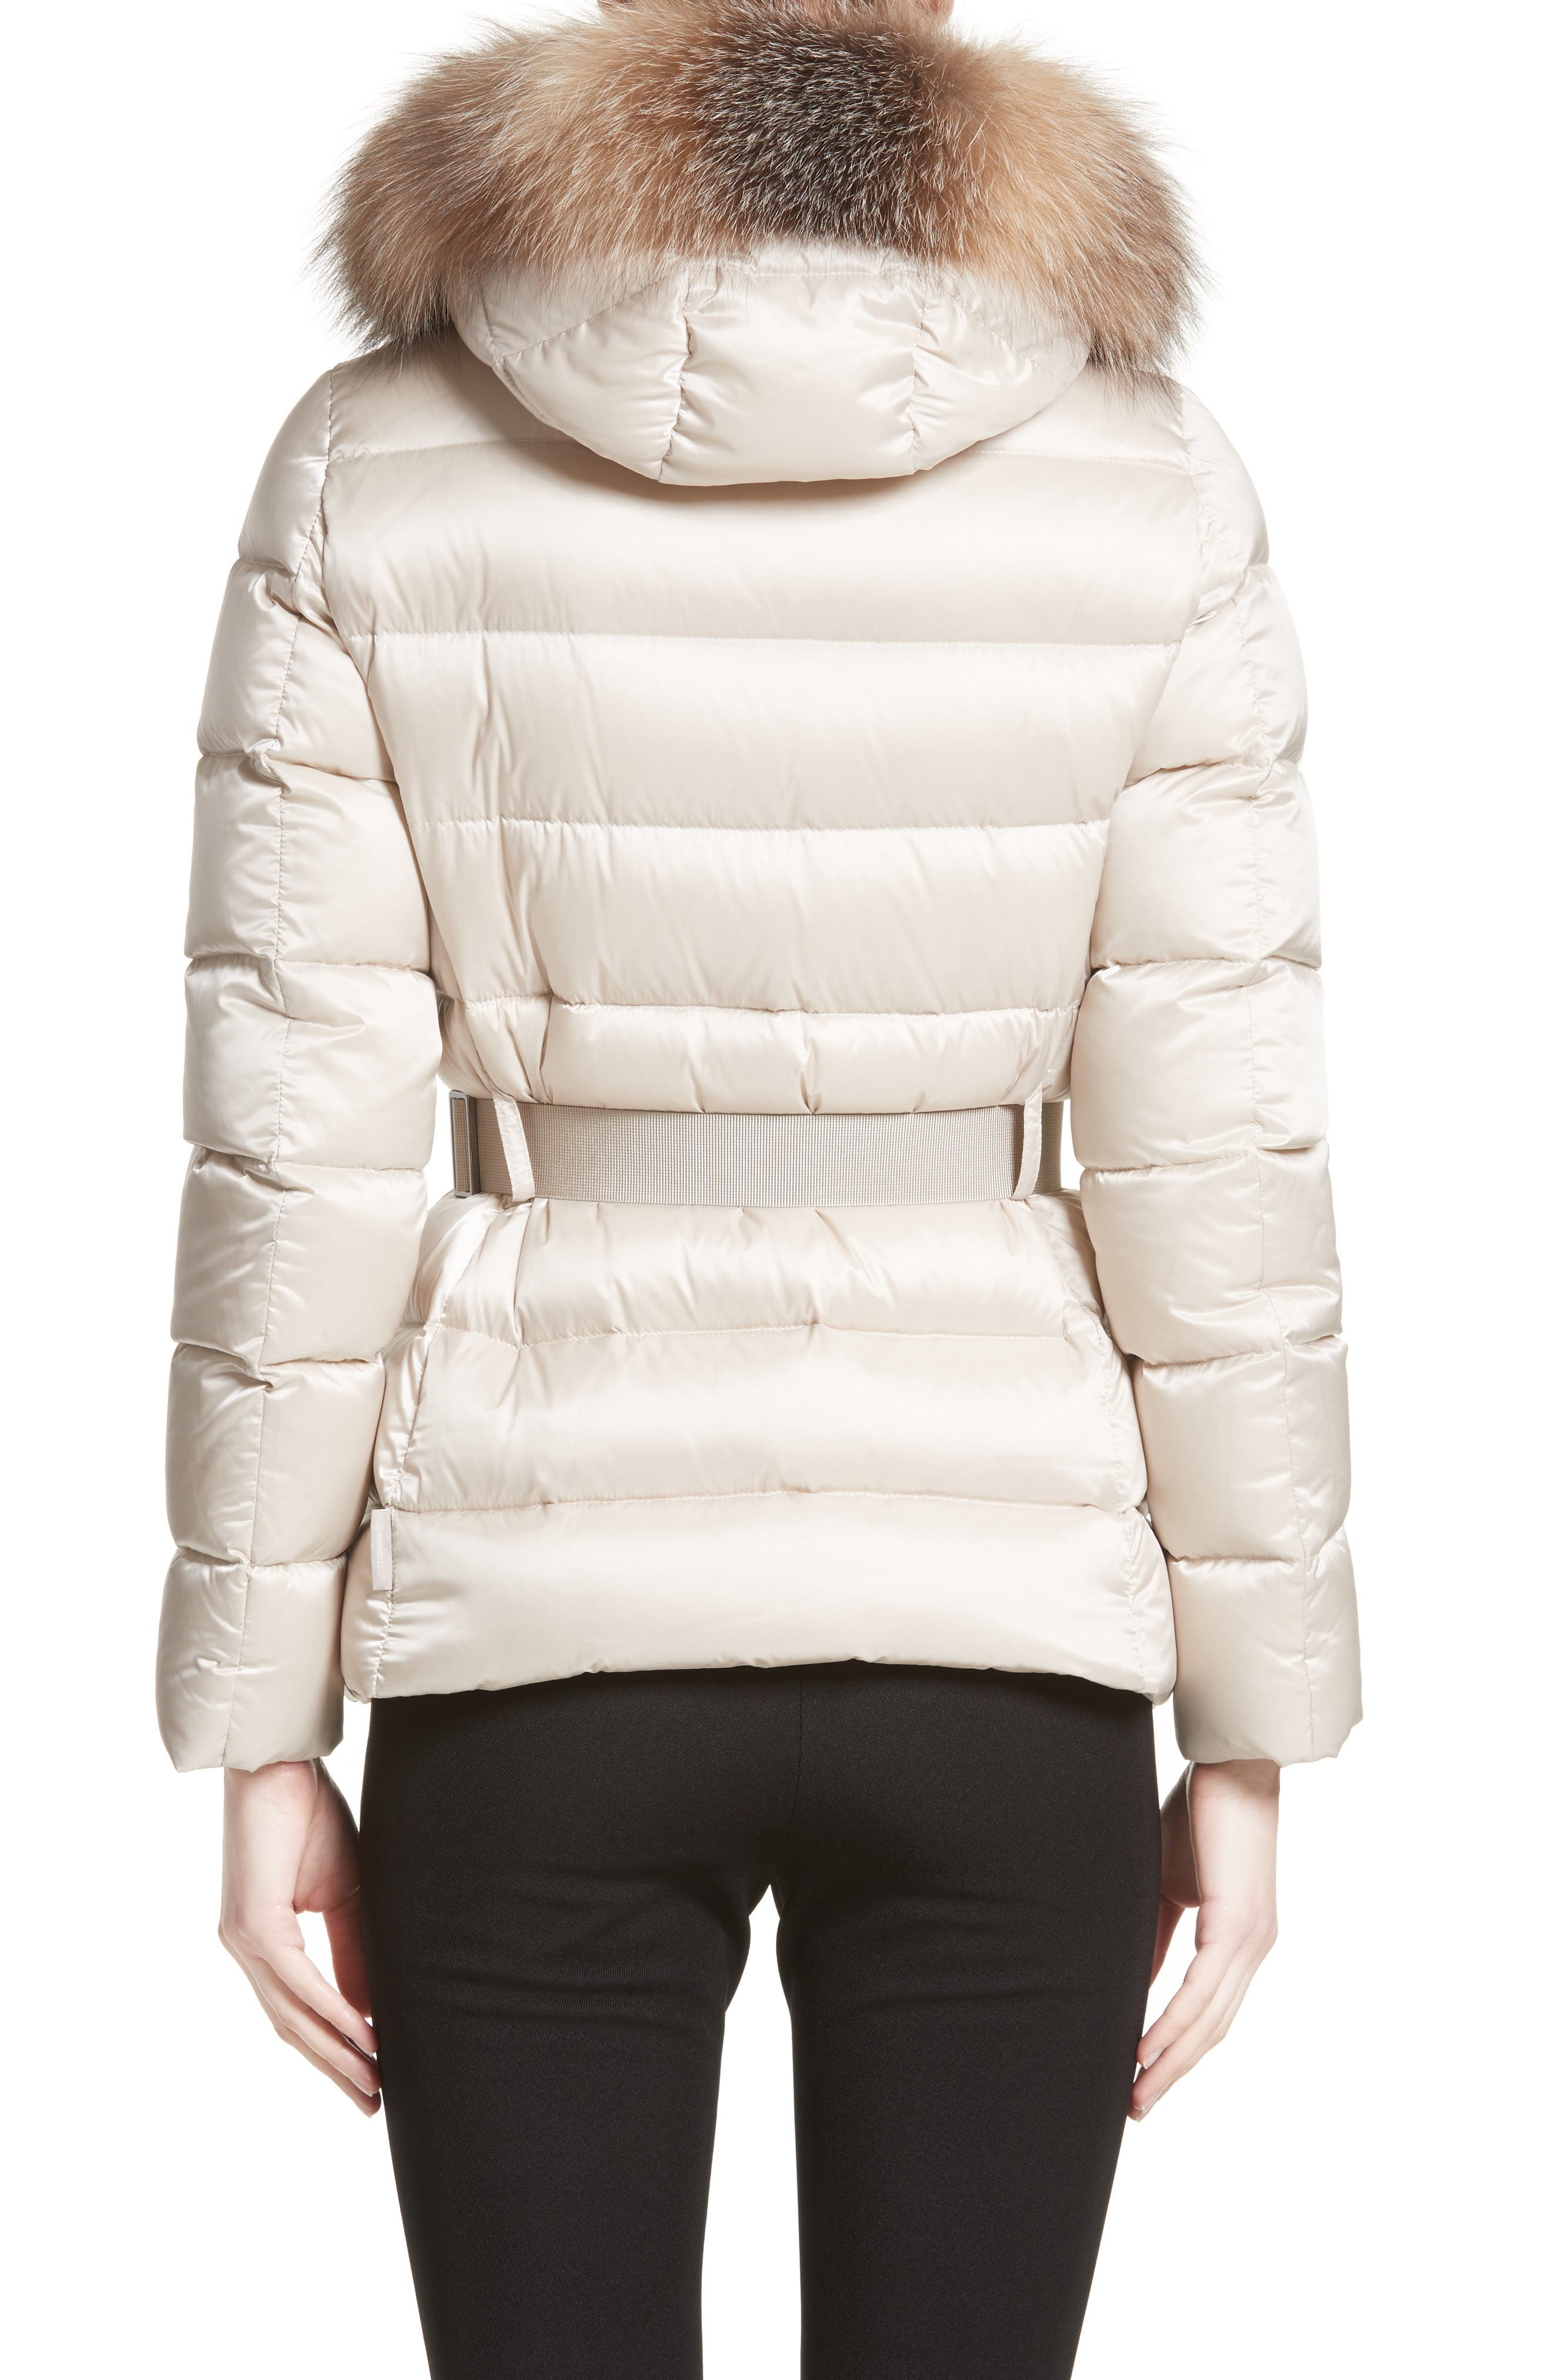 Tatie Belted Down Puffer Coat with Removable Genuine Fox Fur Trim,                             Alternate thumbnail 2, color,                             CHAMPAGNE